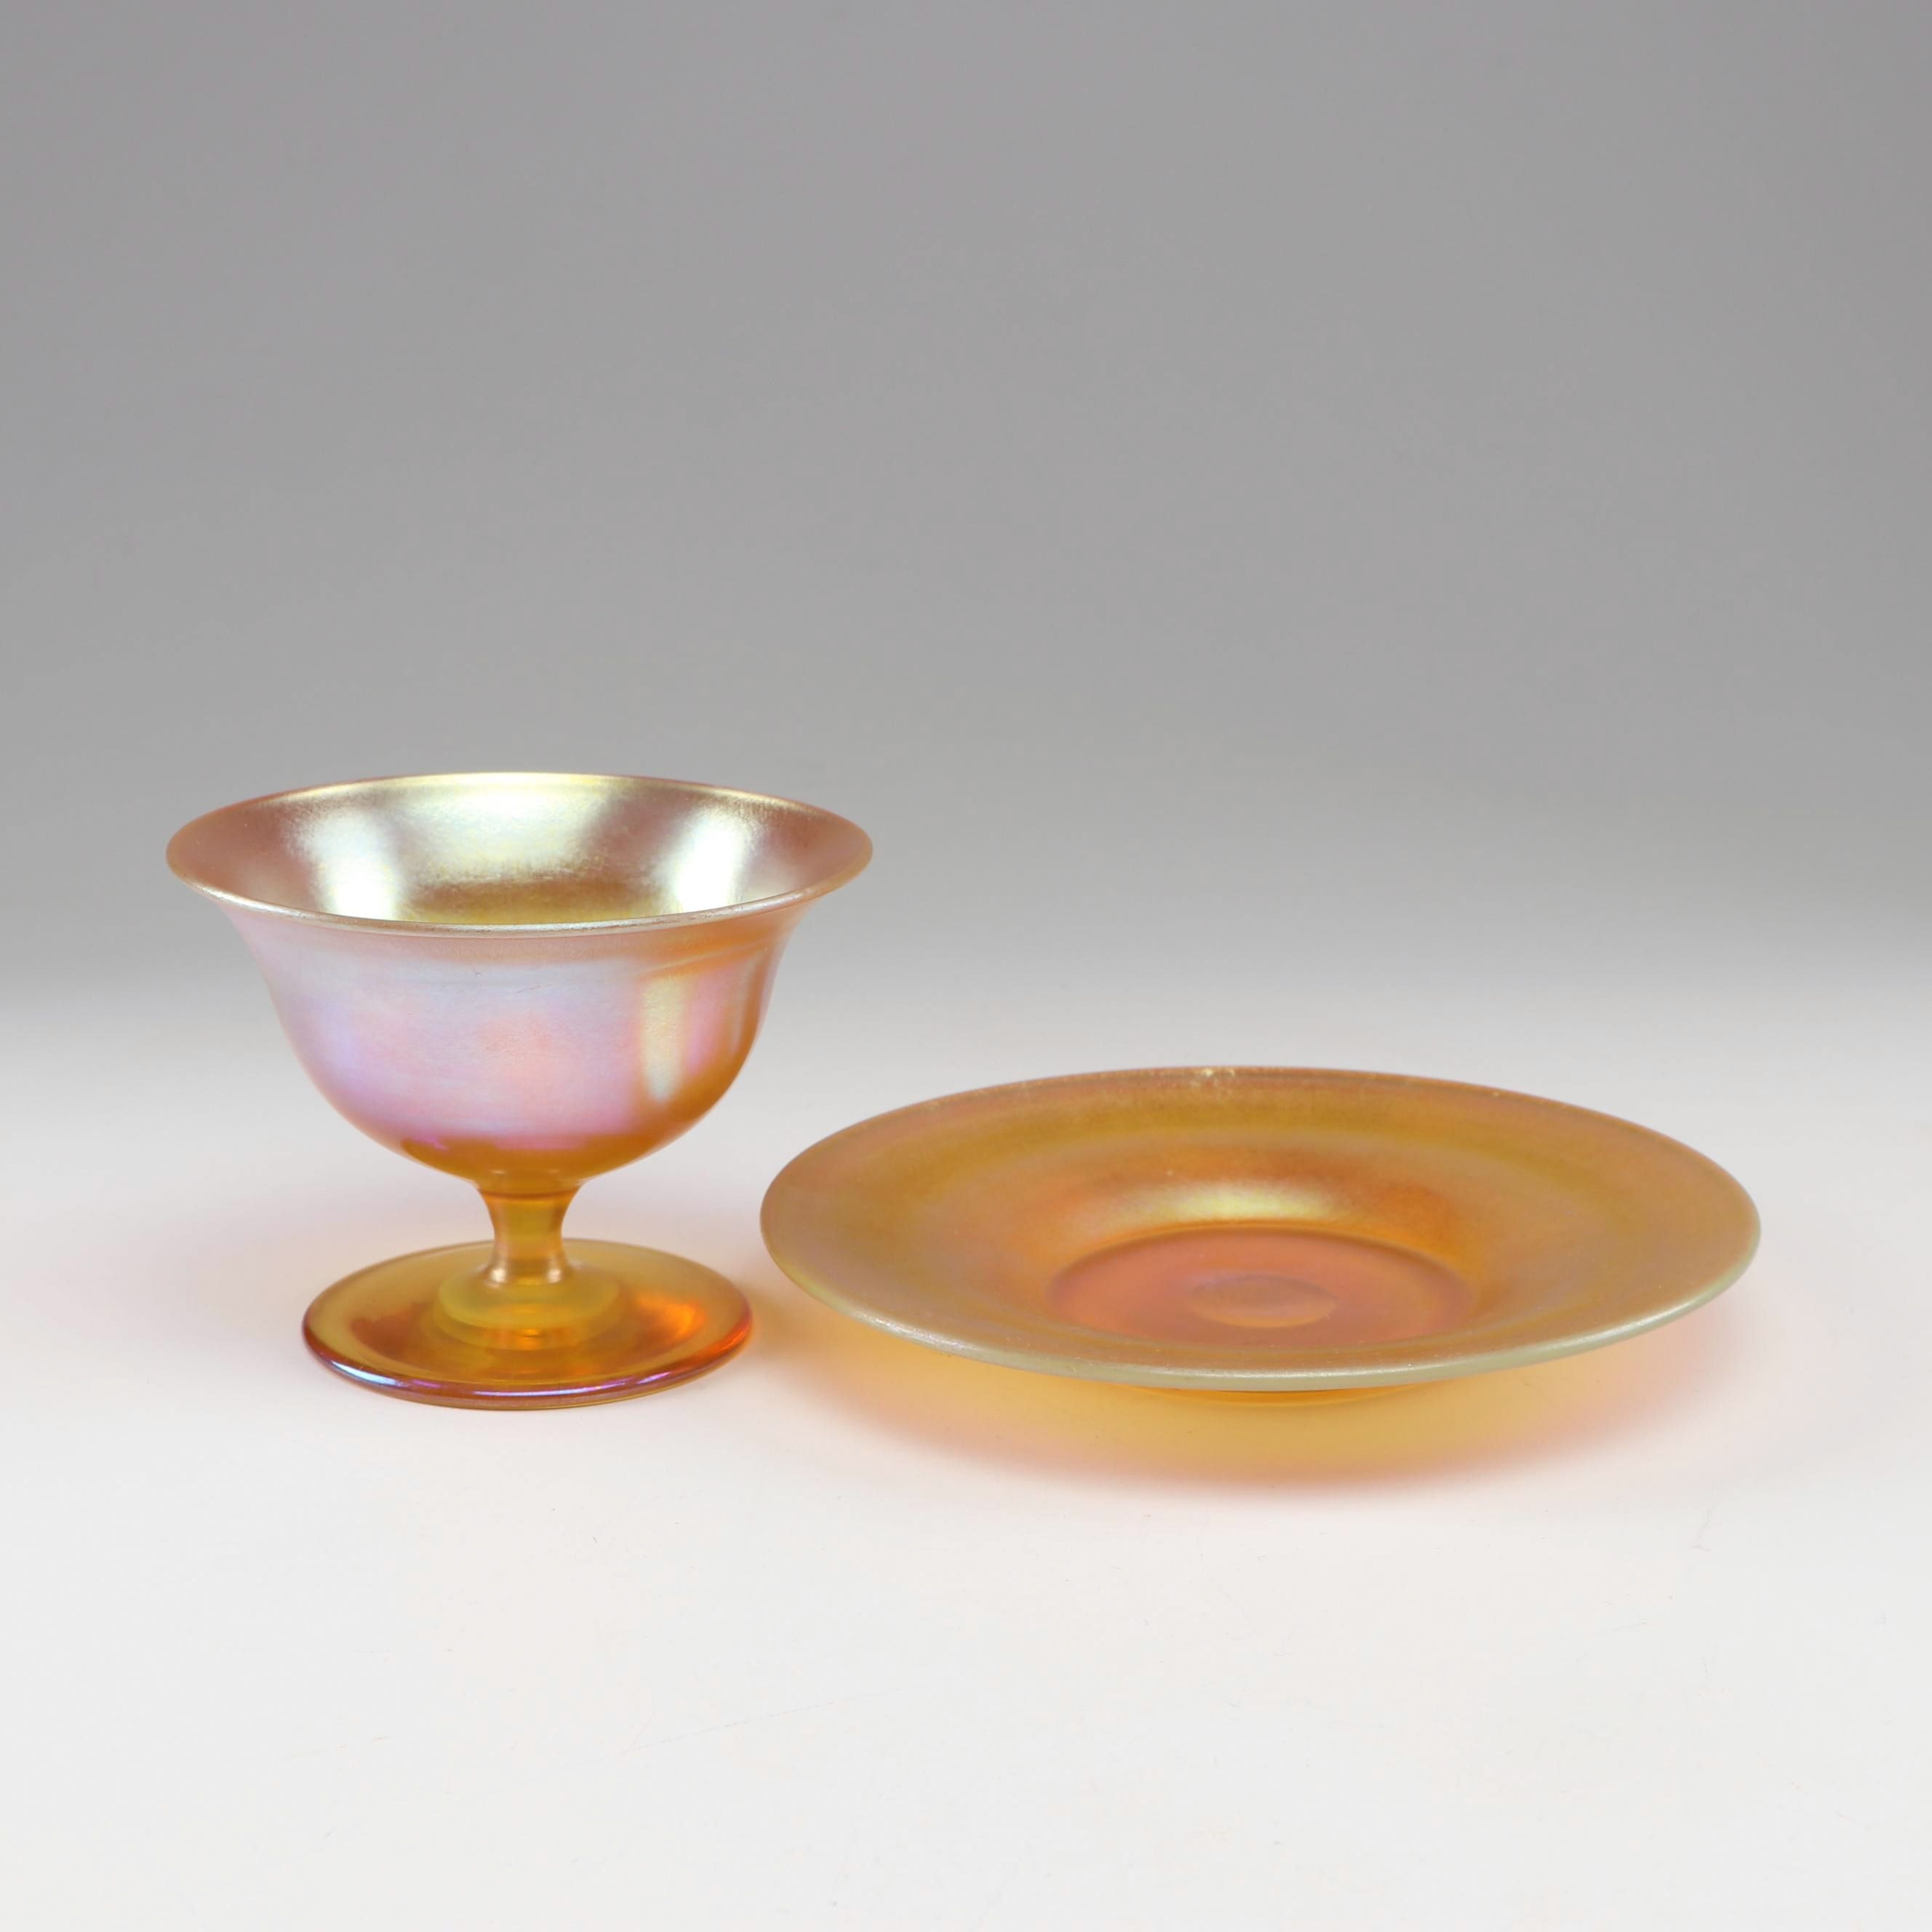 Tiffany Studios Style Iridescent Glass Sherbet Bowl and Plate